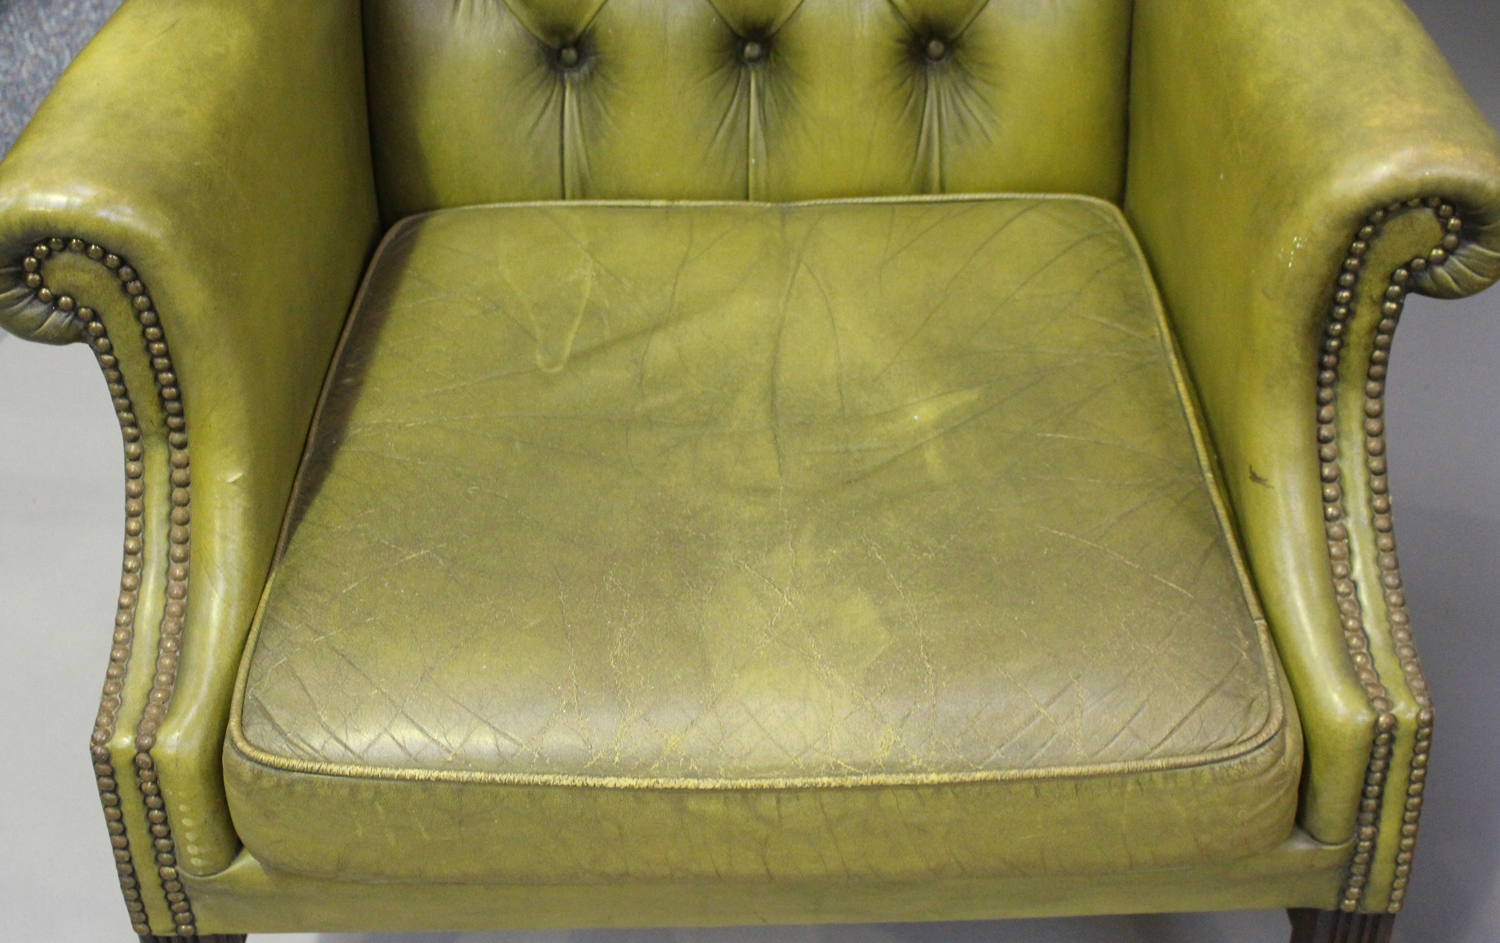 A pair of 20th century George III style wing back armchairs, upholstered in buttoned green - Image 9 of 10